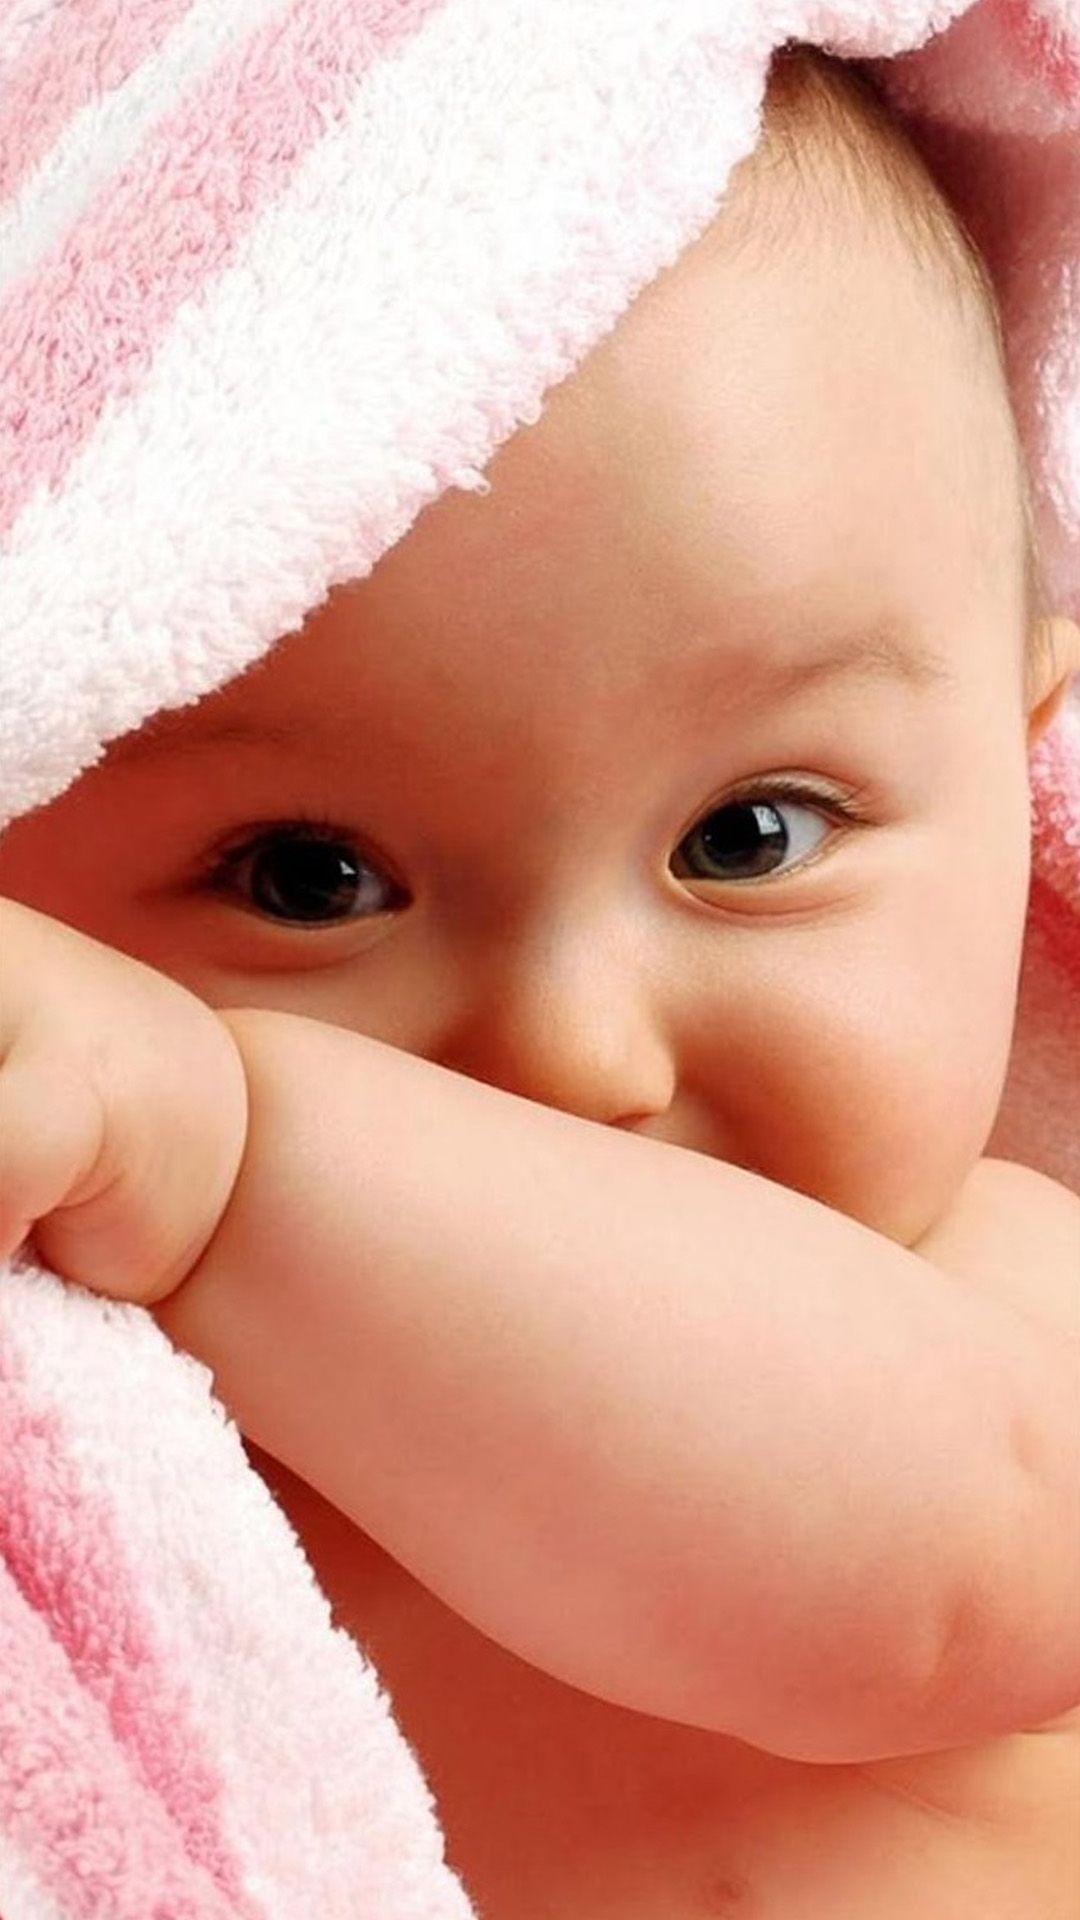 Cute 237 Wallpapers For Iphone Baby Girl Images Cute Baby Girl Images Cute Babies